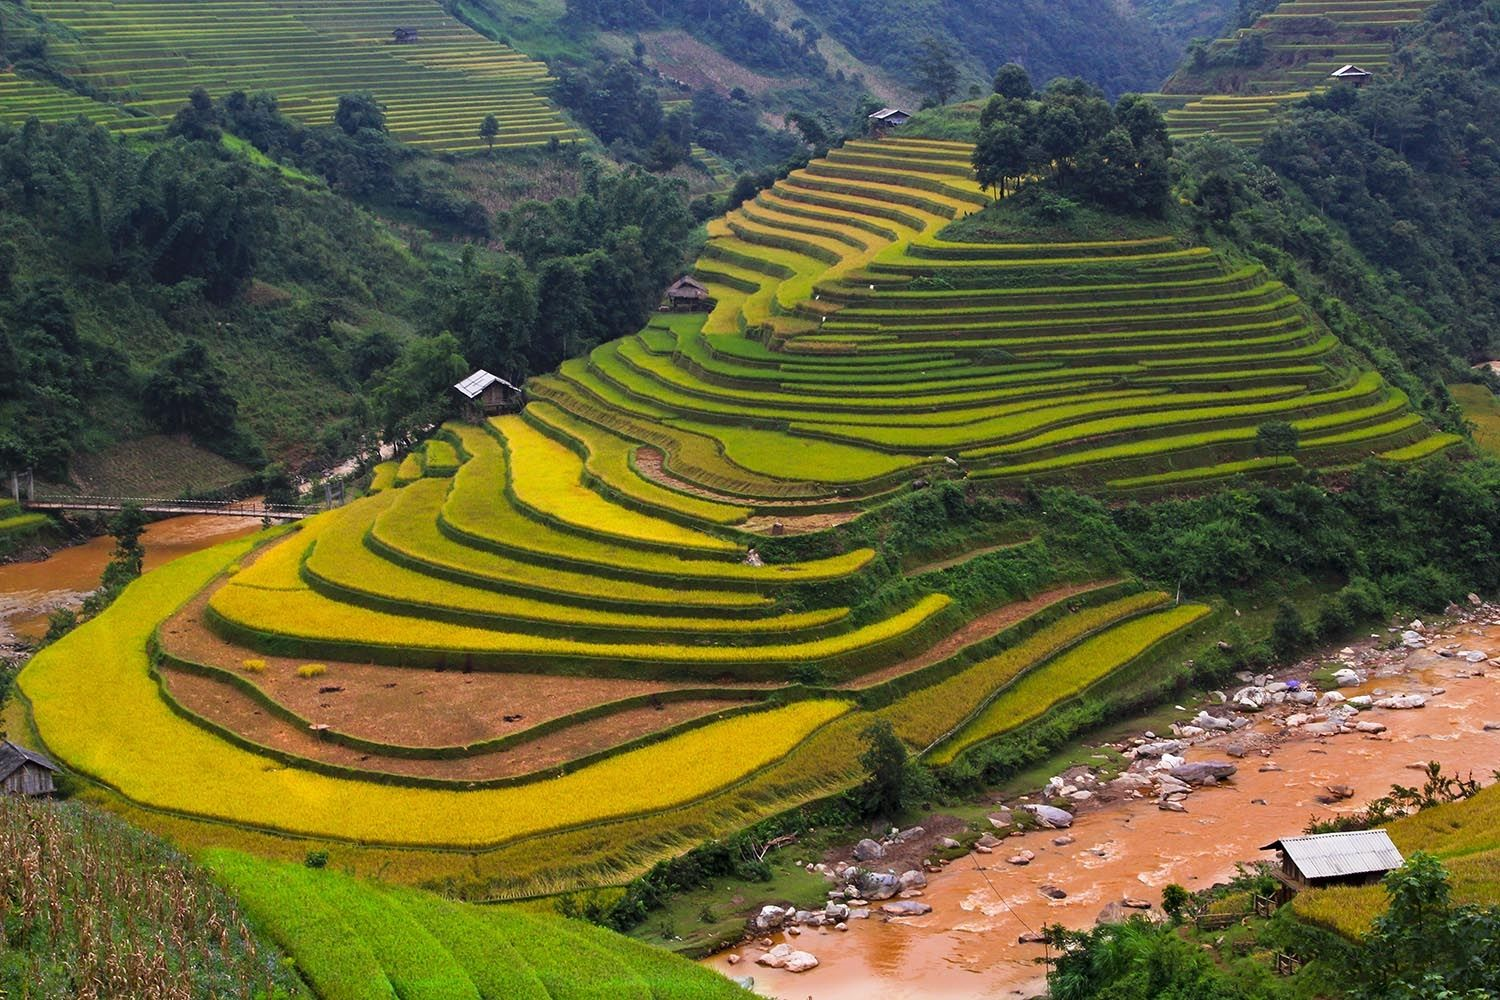 More Our Photos of Mu Cang Chai - Travel information for